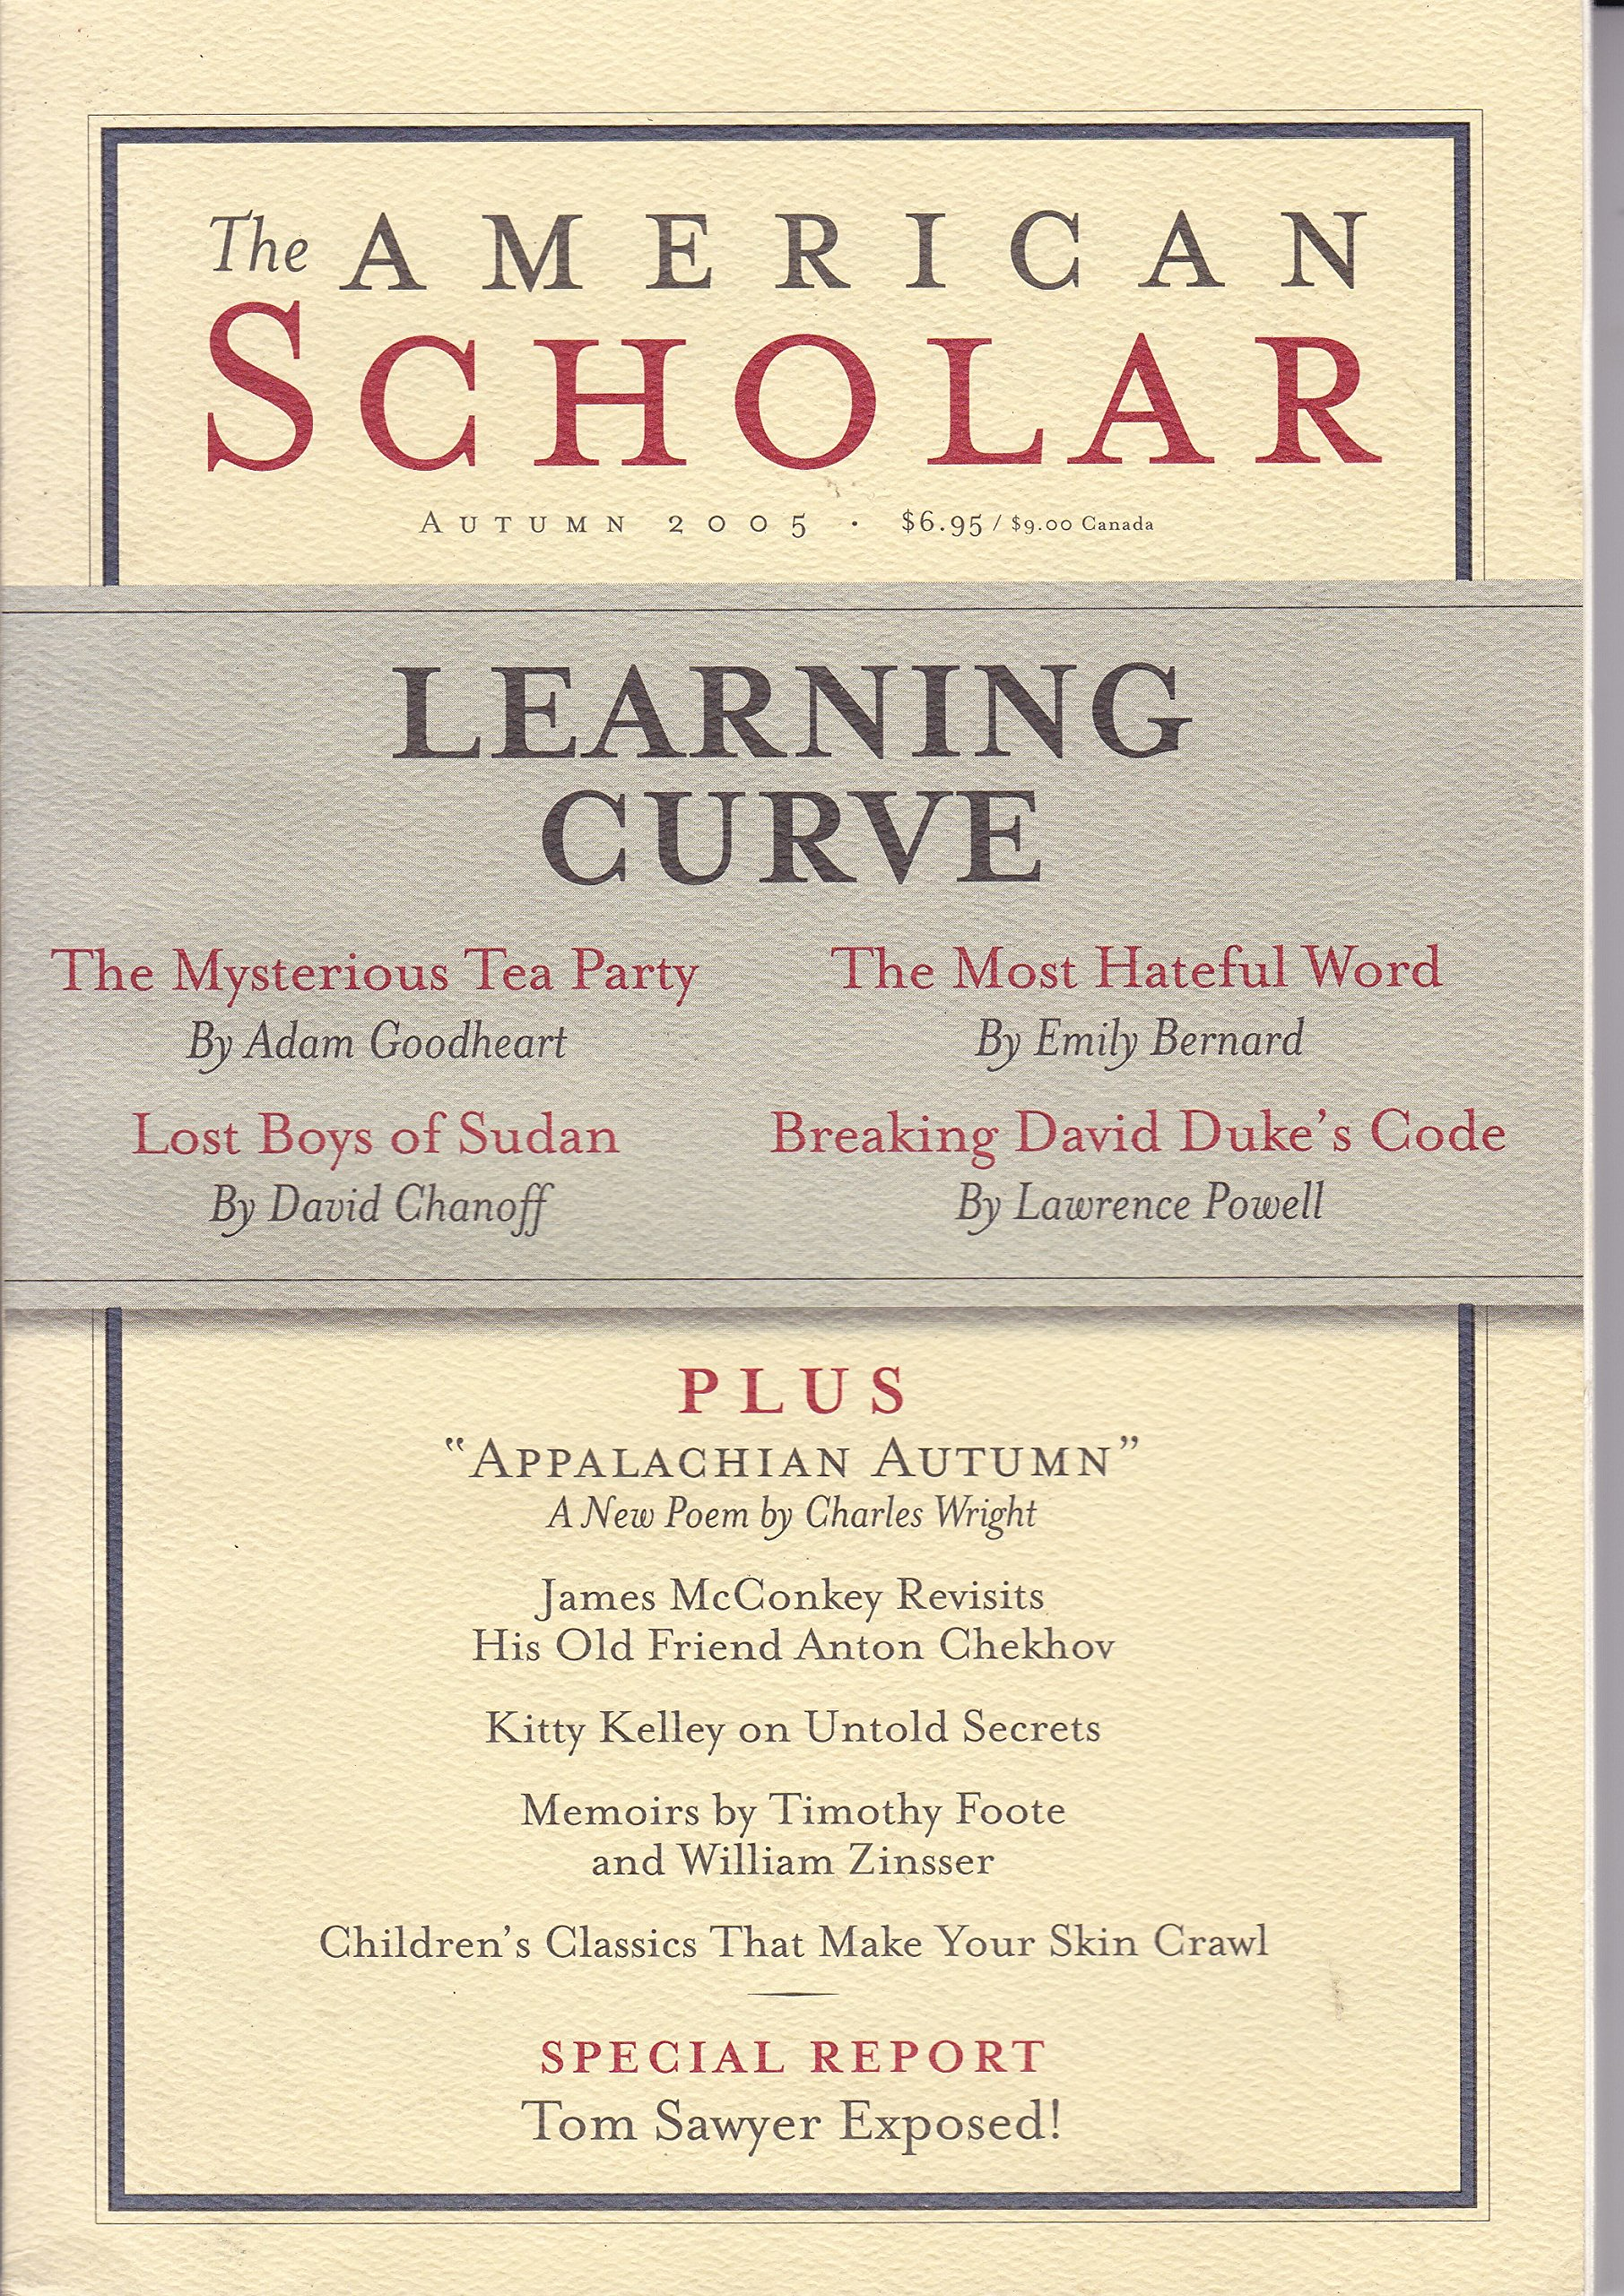 American Scholar Volume 74 Issue 4 Autumn 2005